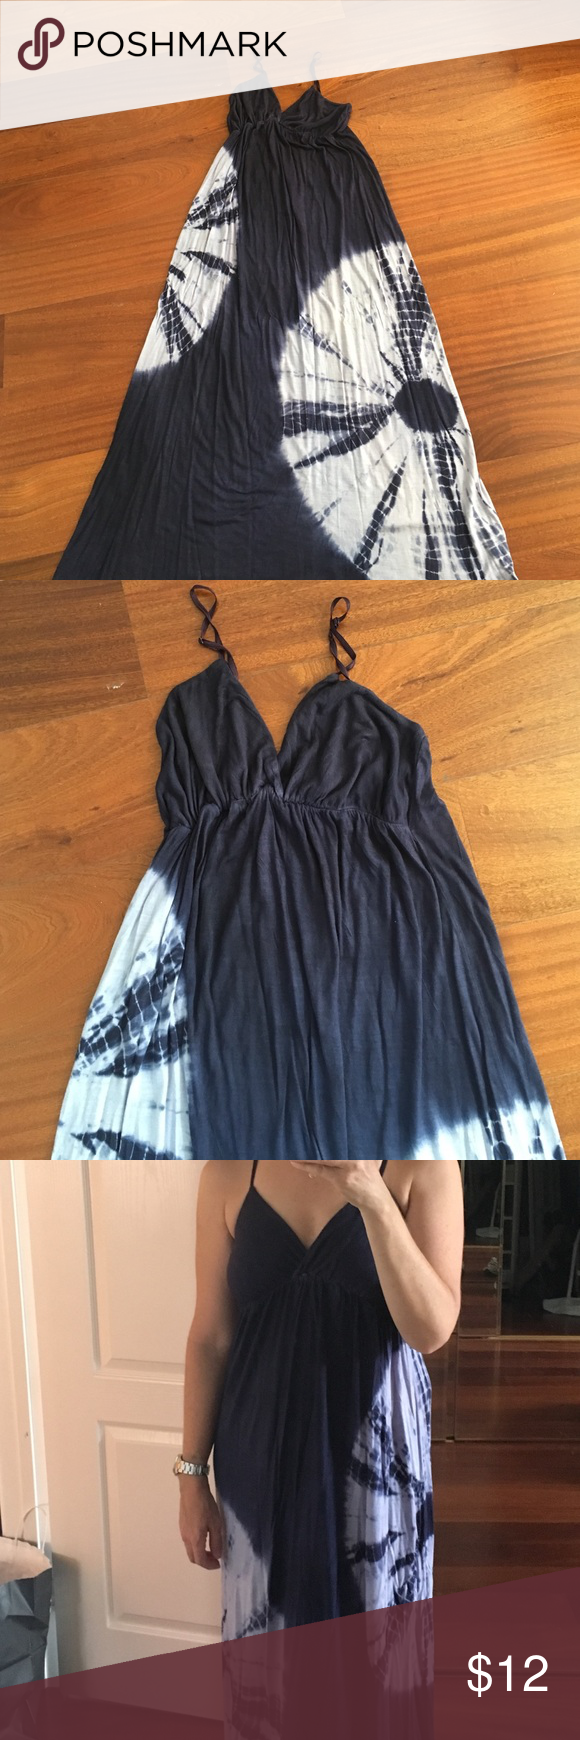 Tie dye long dress tie dying swimsuits and st dresses